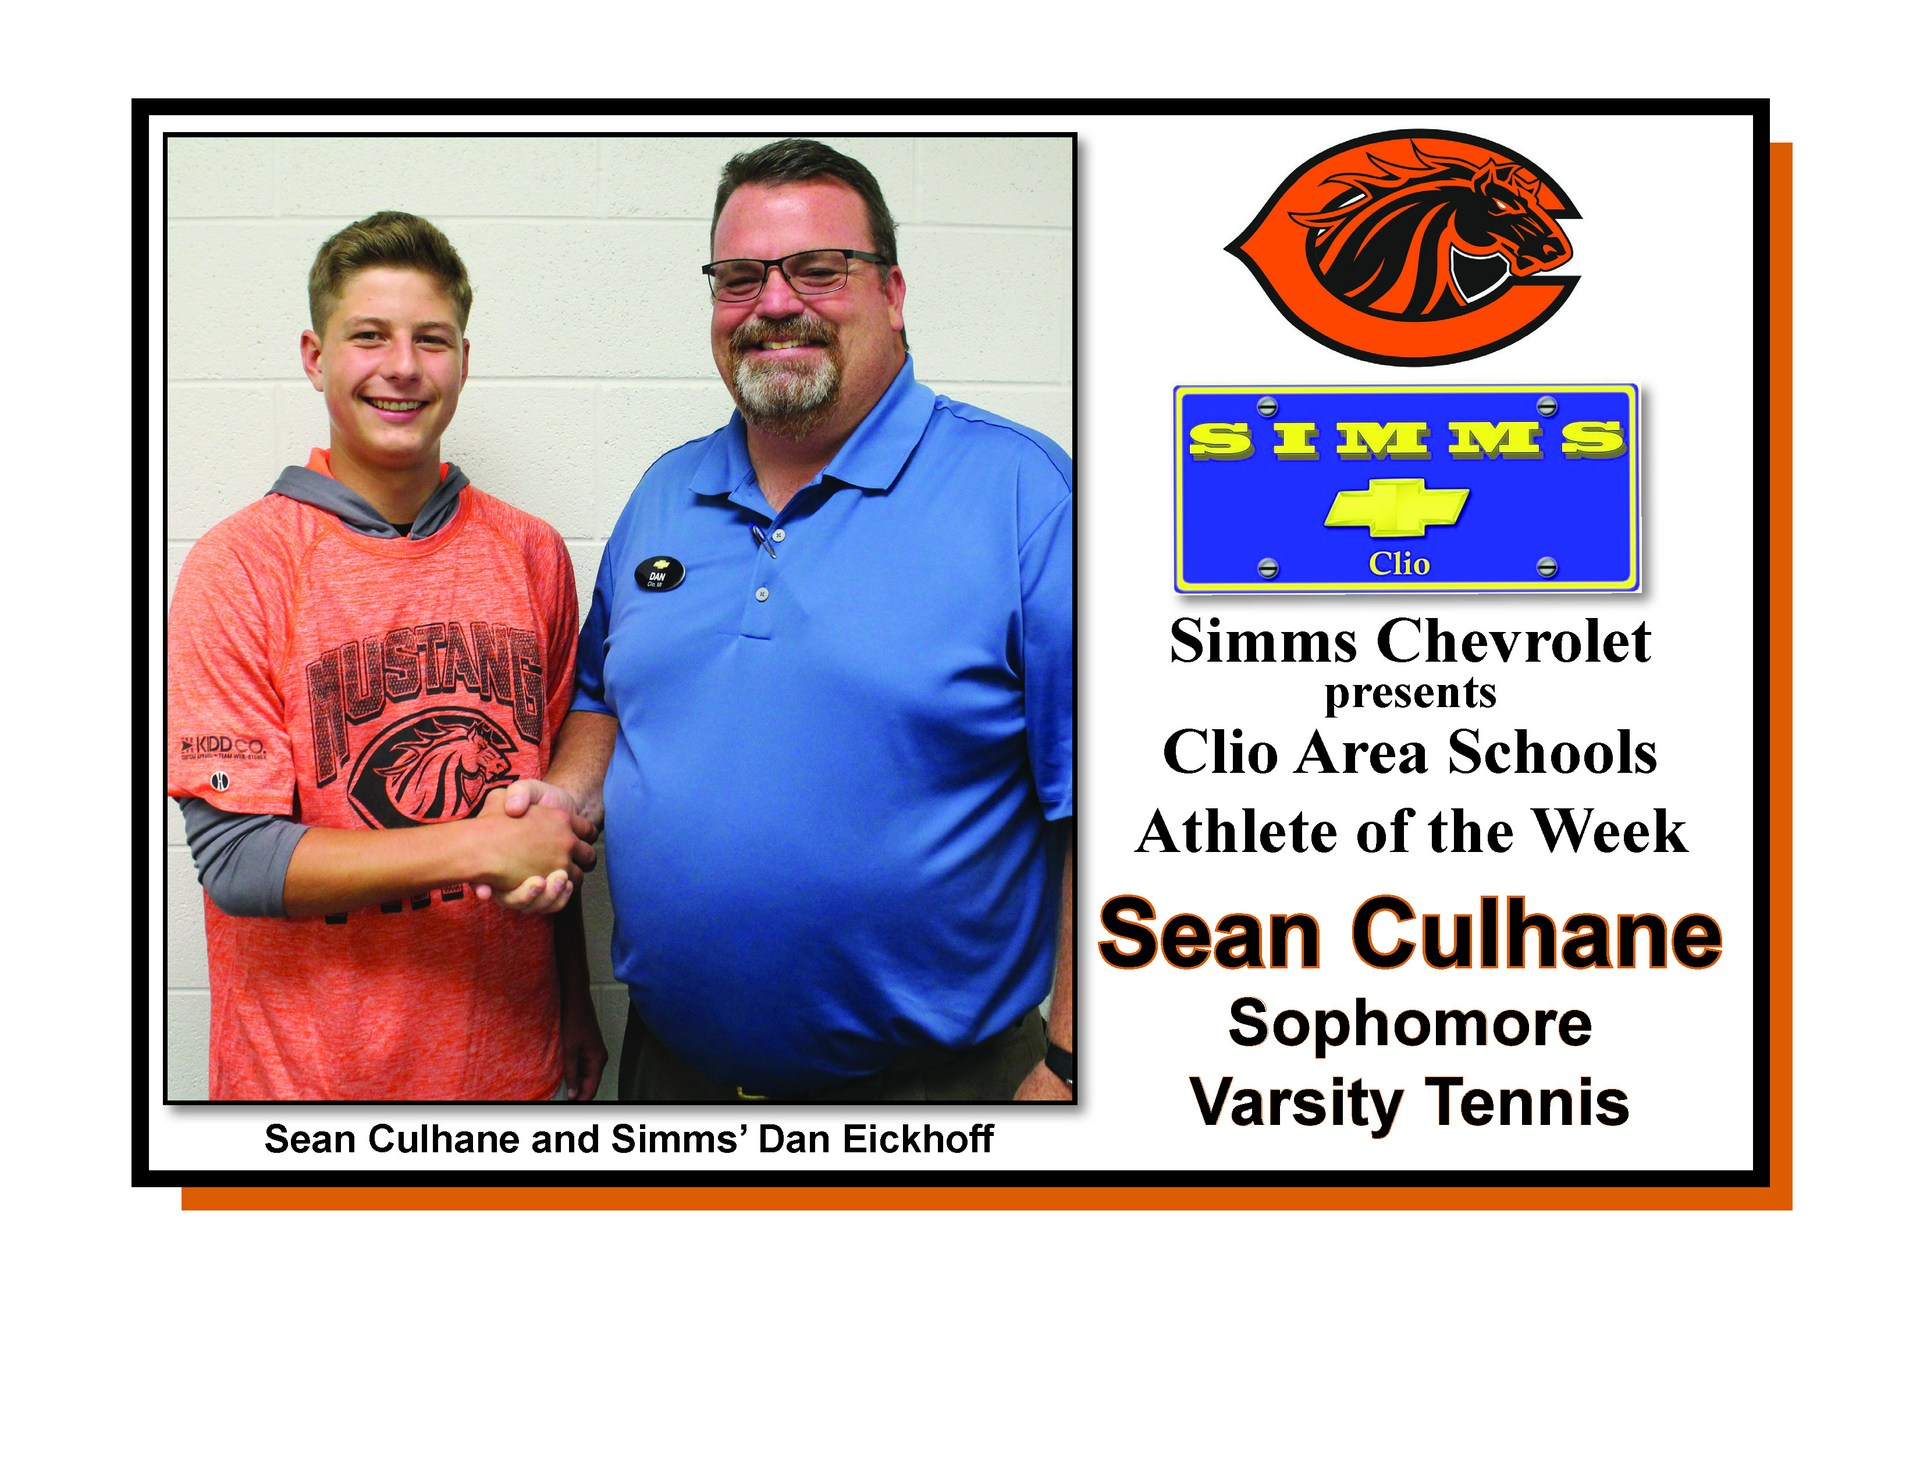 Photo of Sean Culhane receiving Simms Chevrolet Athlete of the Week honors from Dan Eickoff